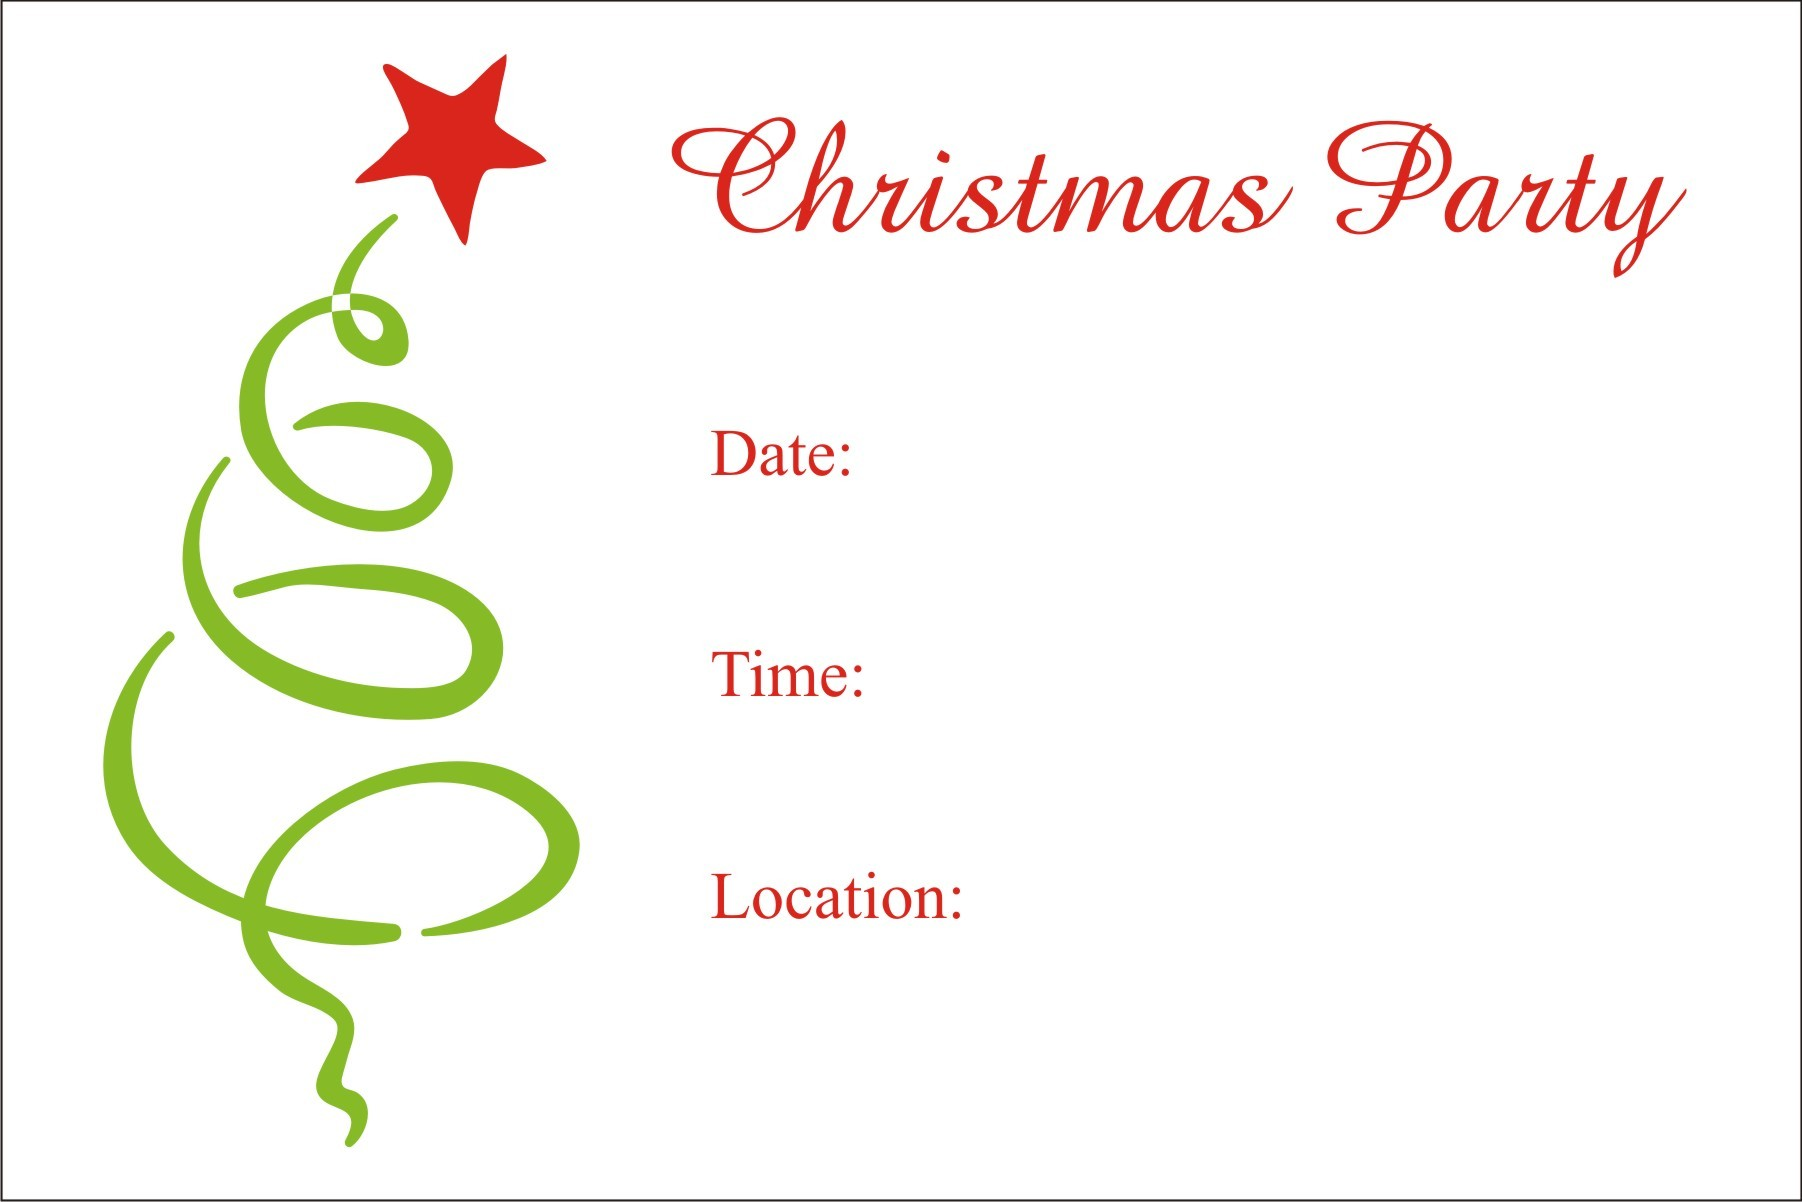 christmas party invitation template - 28 images - download free ...